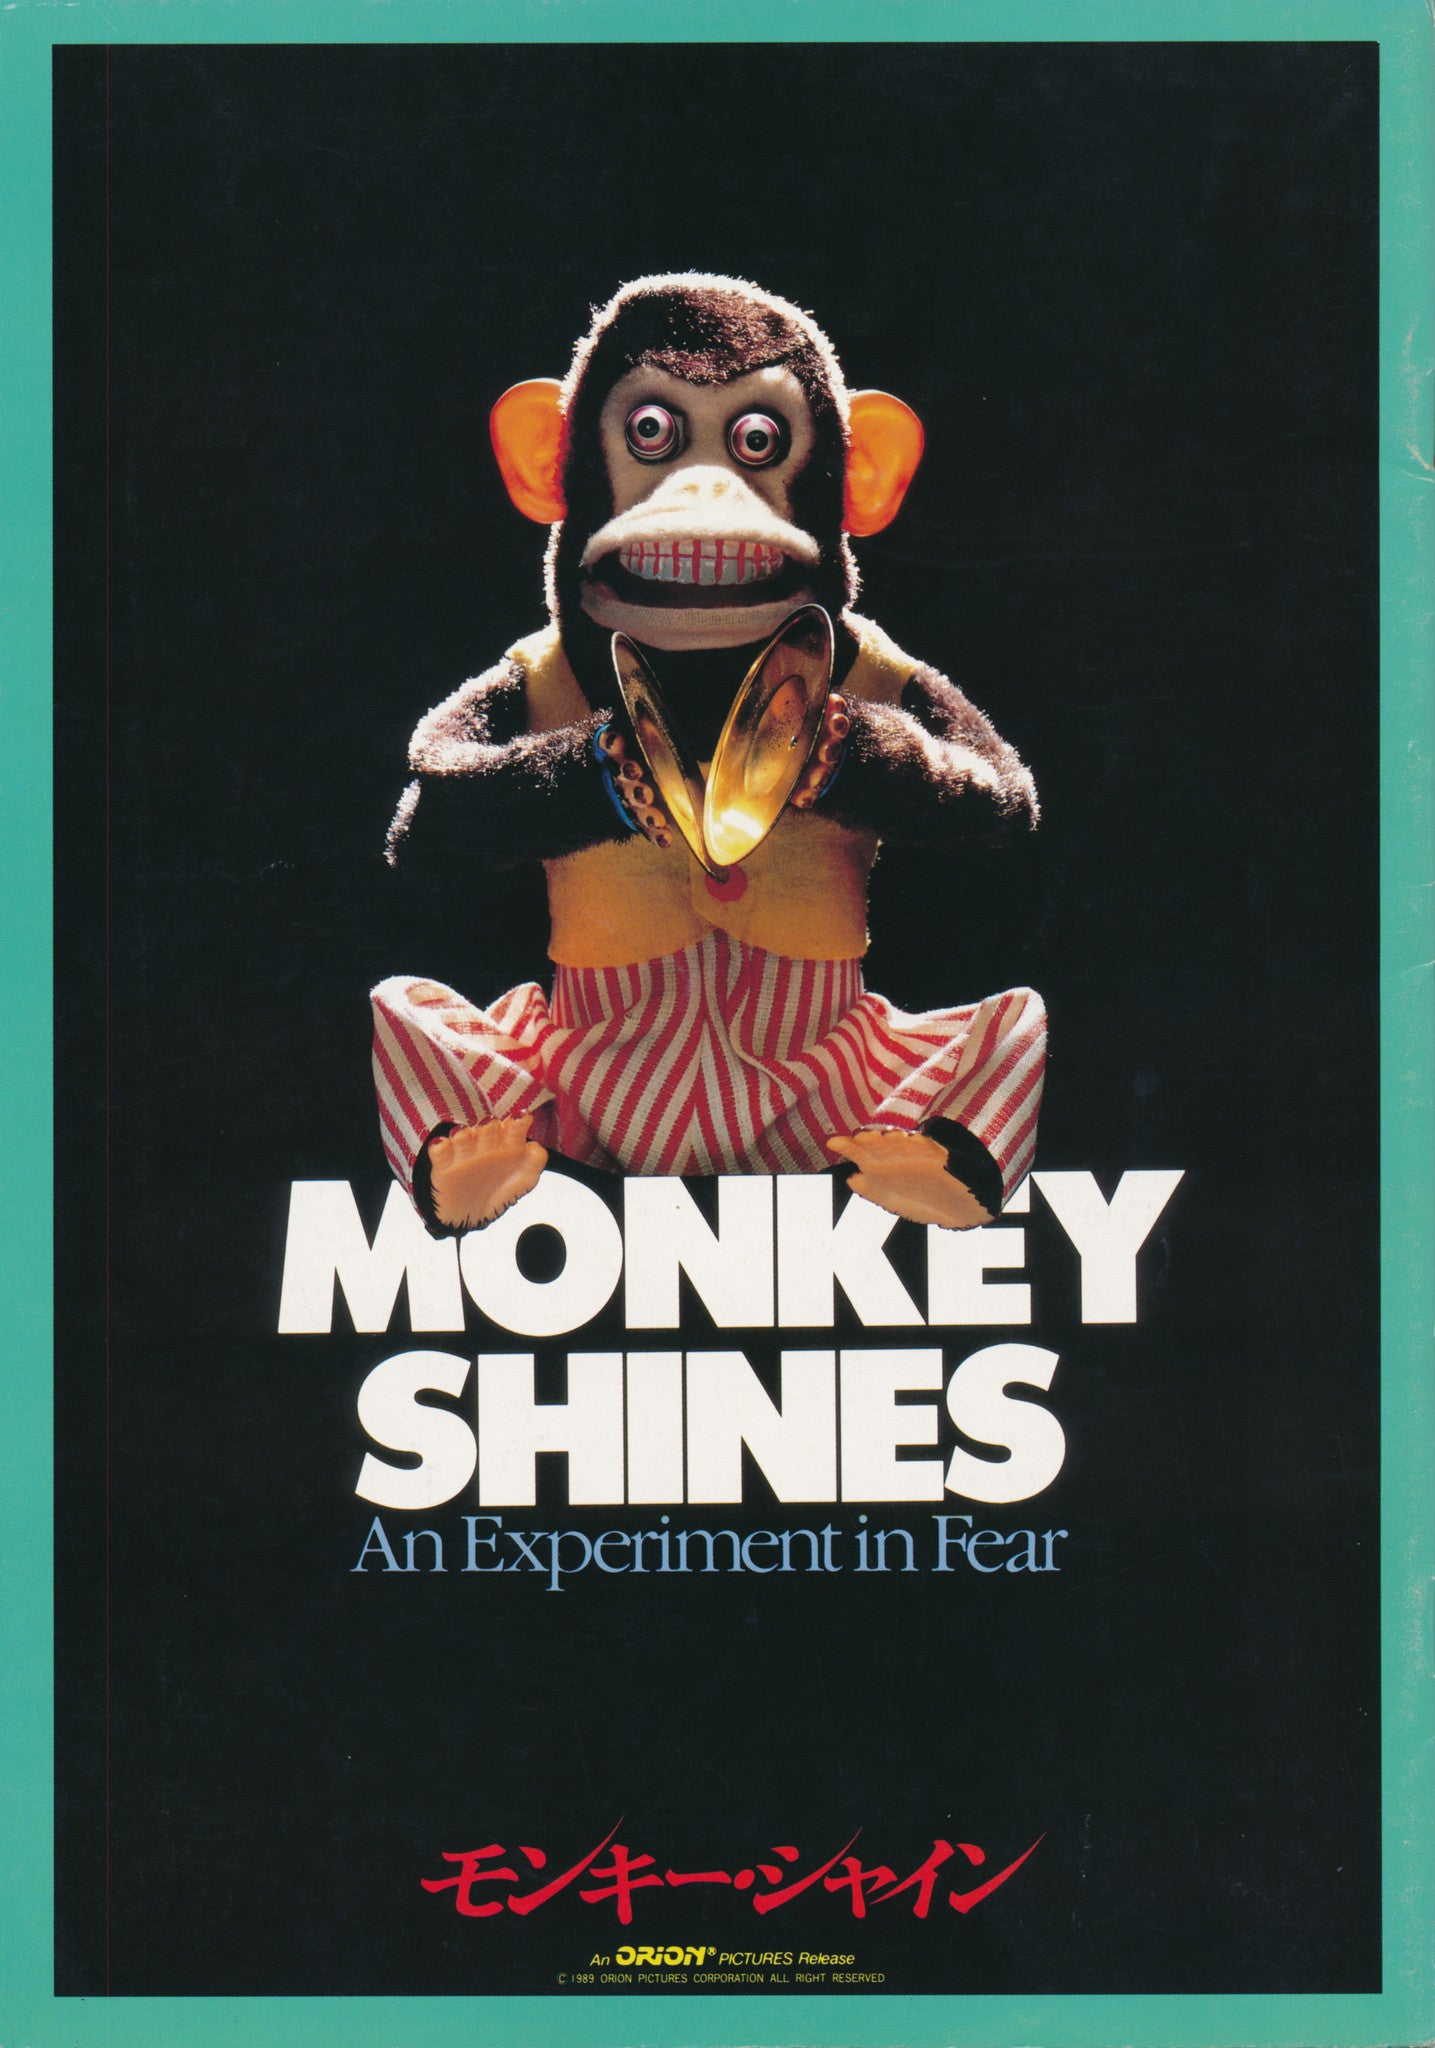 MONKEY SHINES - Japanese program